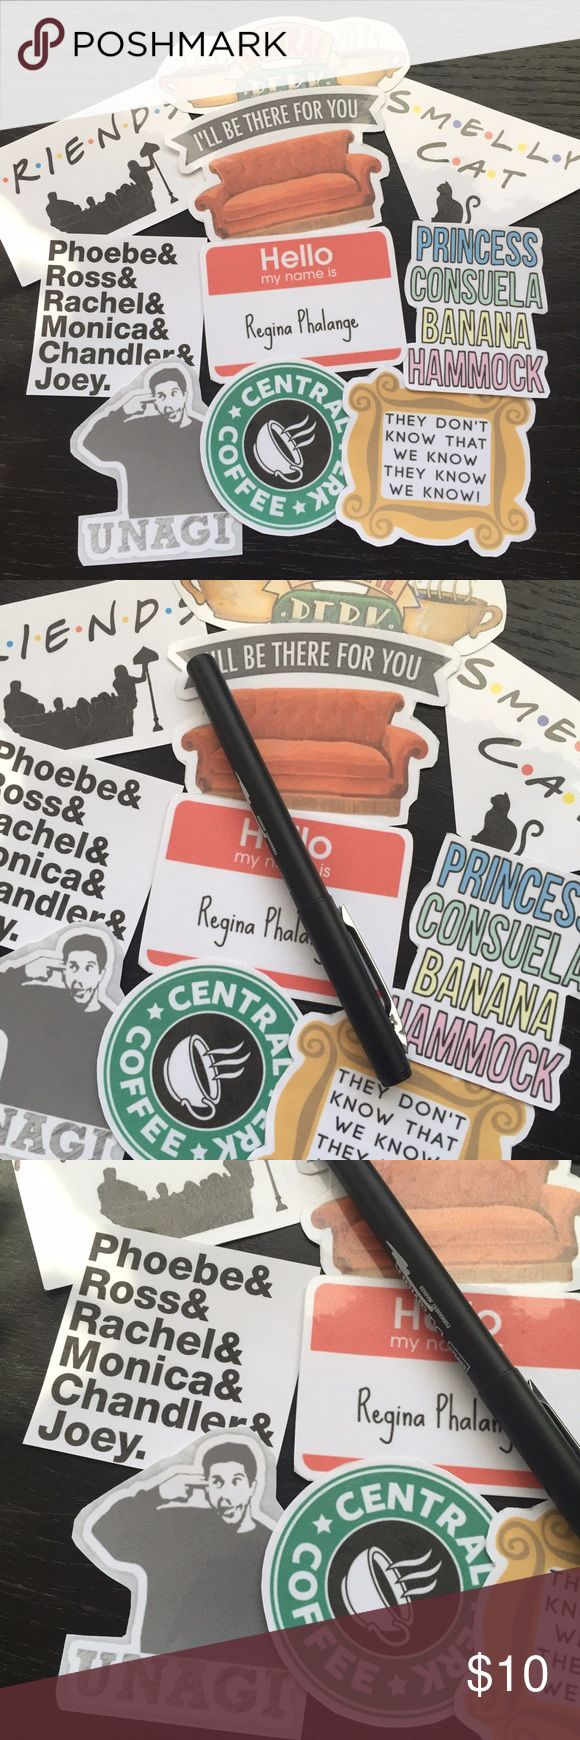 Friends handmade sticker pack 10 piece bundle Friends 90s tv show tumblr sticker collection! Handmade from the heart, laminated for a bit of extra protection. Not waterproof- perfect for personalizing your books, laptop, accessories, whatever!  Tags: phoebe, smelly cat, Ross, Rachel, chandler, Joey, Monica, central perk, nbc, sitcom Accessories